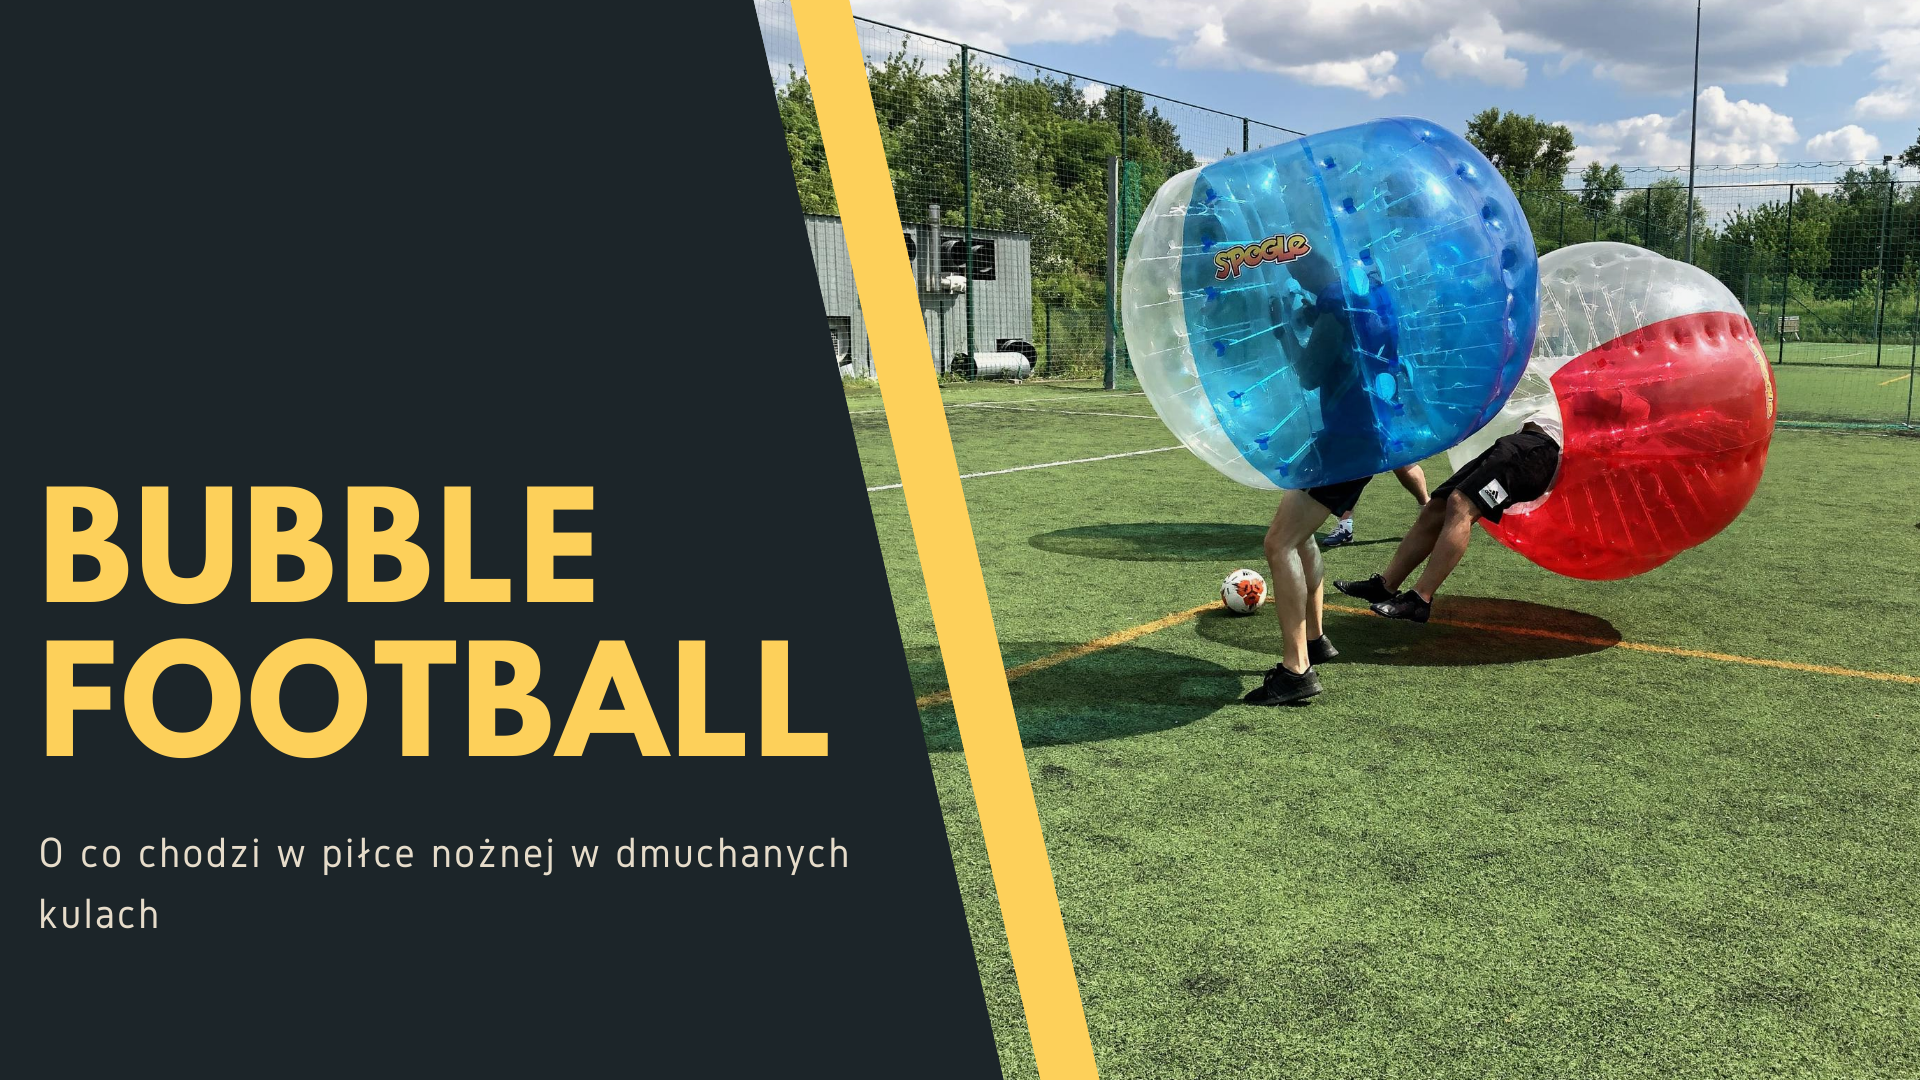 O co chodzi w Bubble Football?